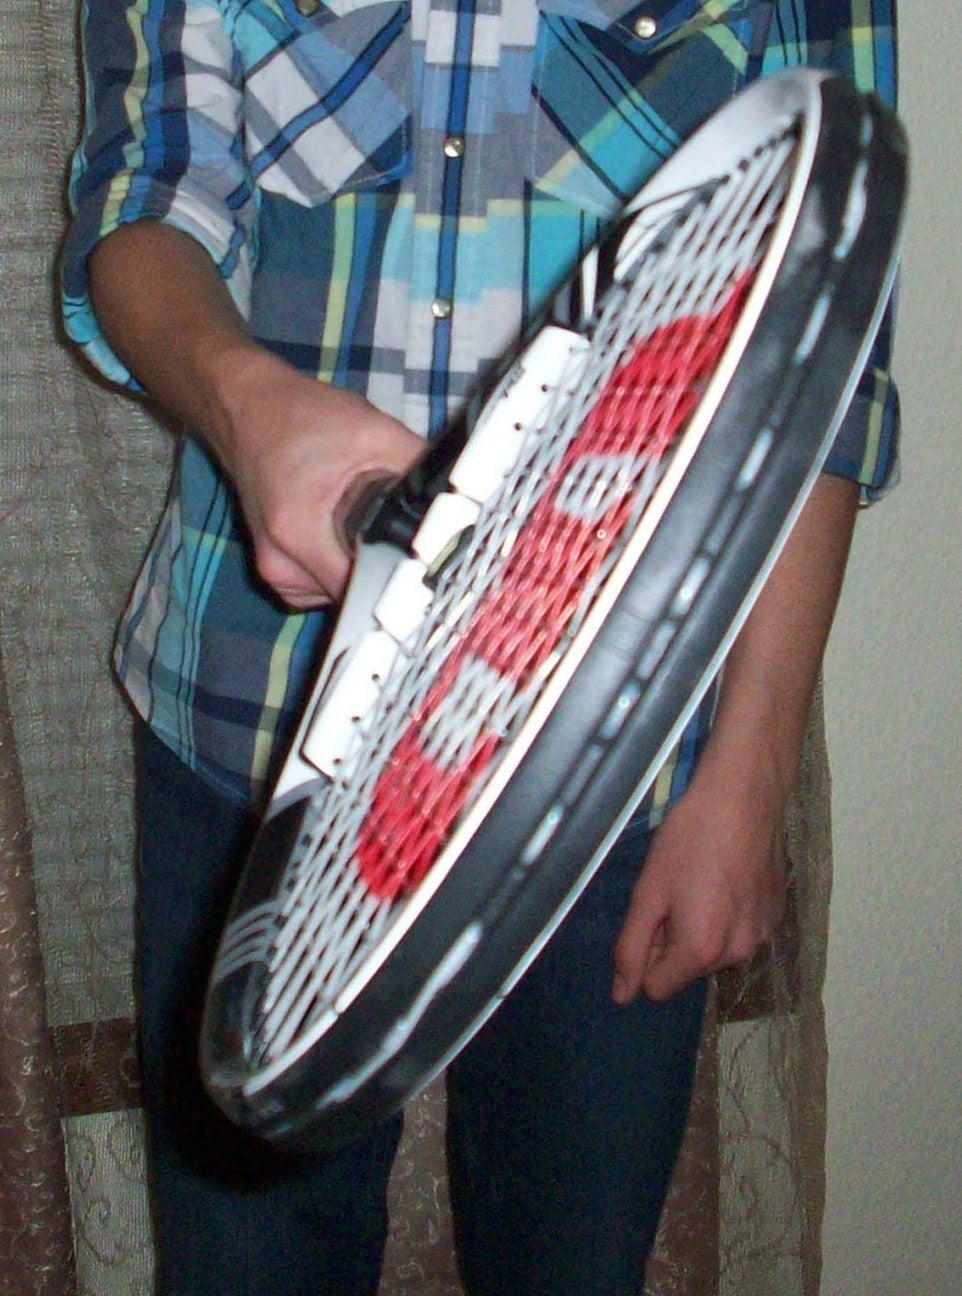 How to Hold a Tennis Racquet